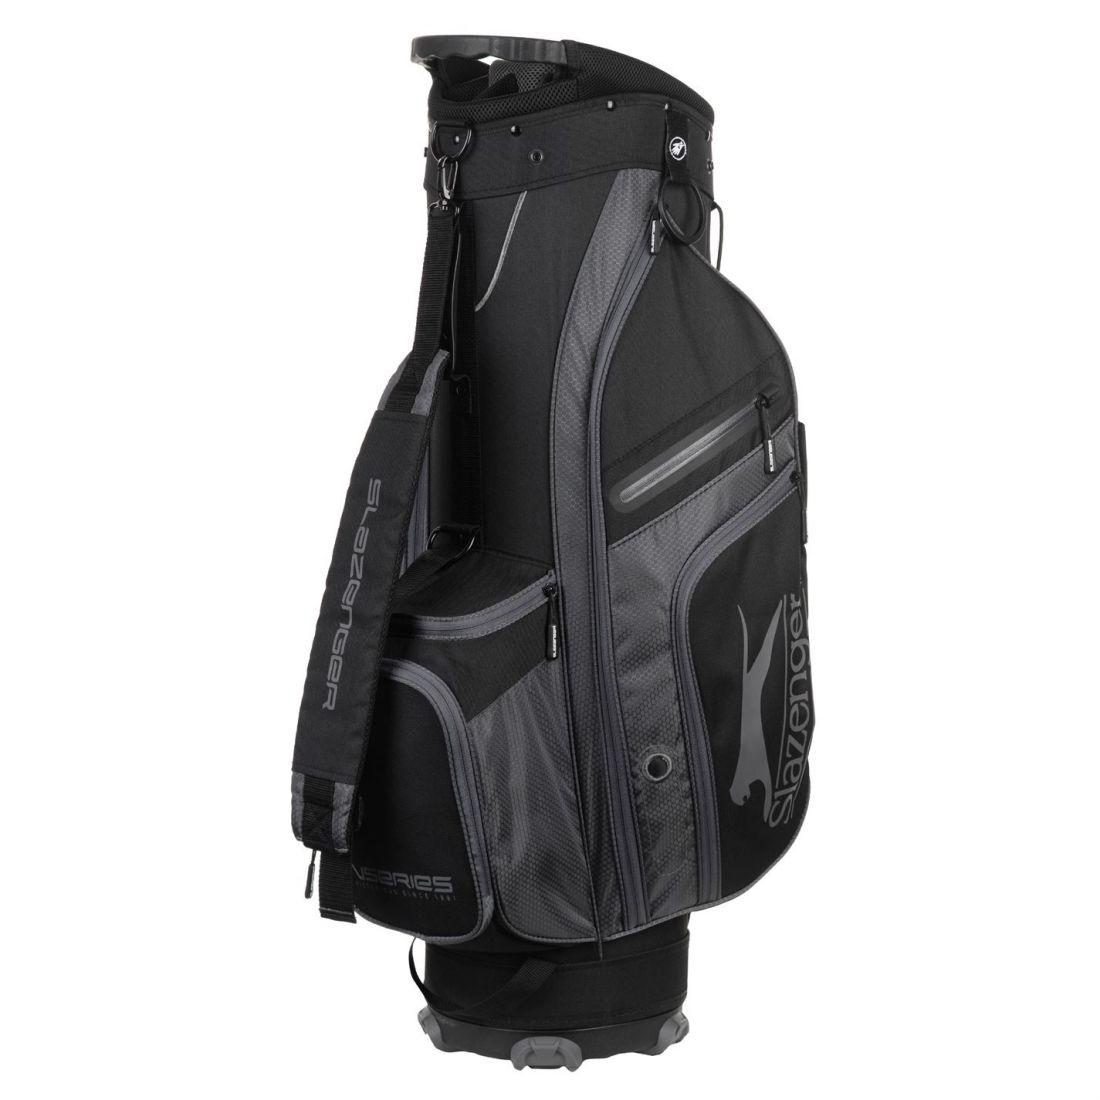 6cf7a95690 Slazenger Unisex V Series Lite Golf Cart Bag Zip 5057816252951 | eBay